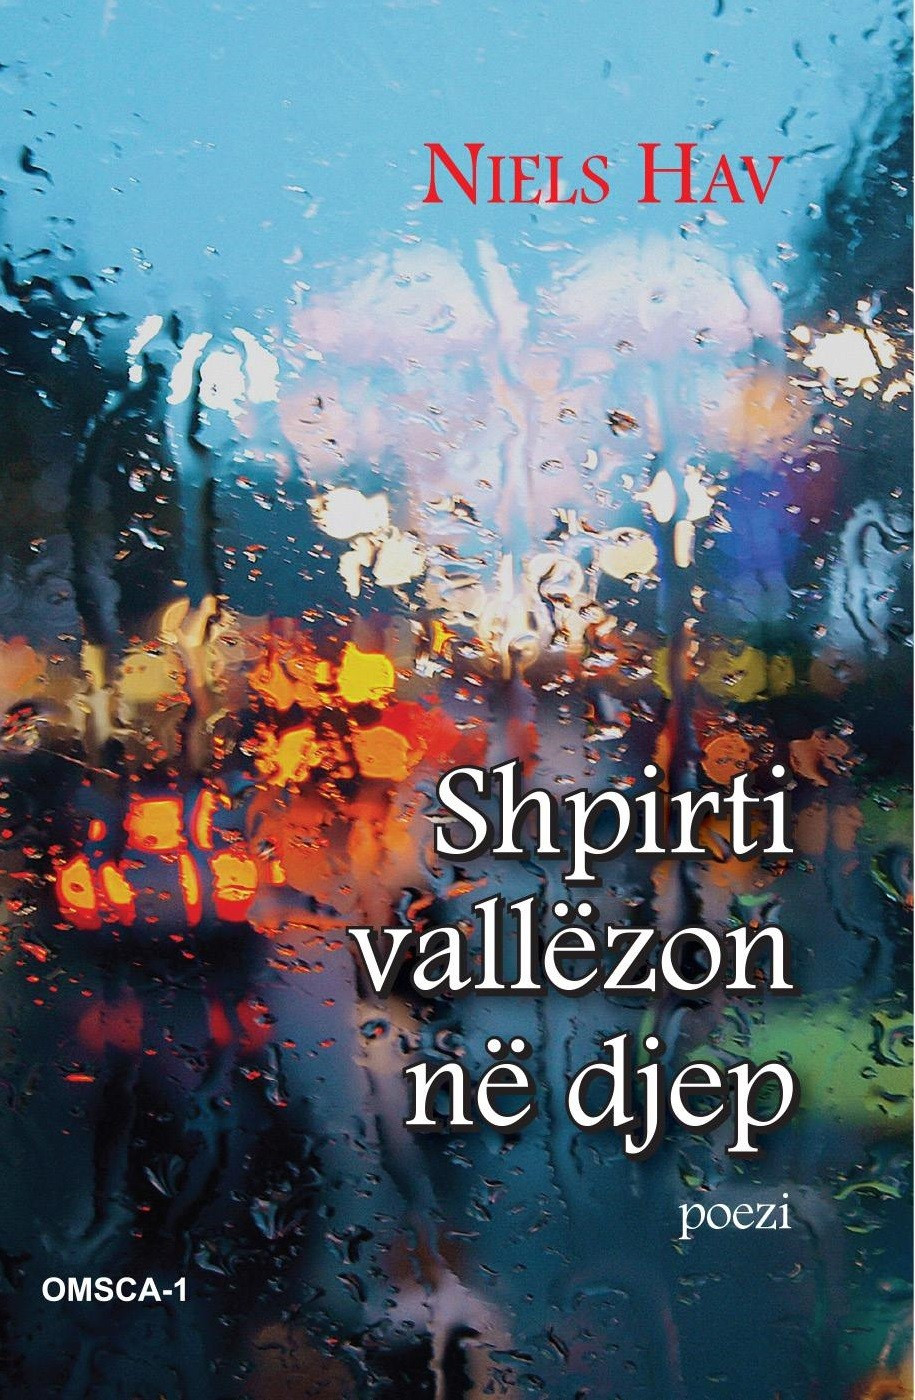 Shpirti vallzon ne djep